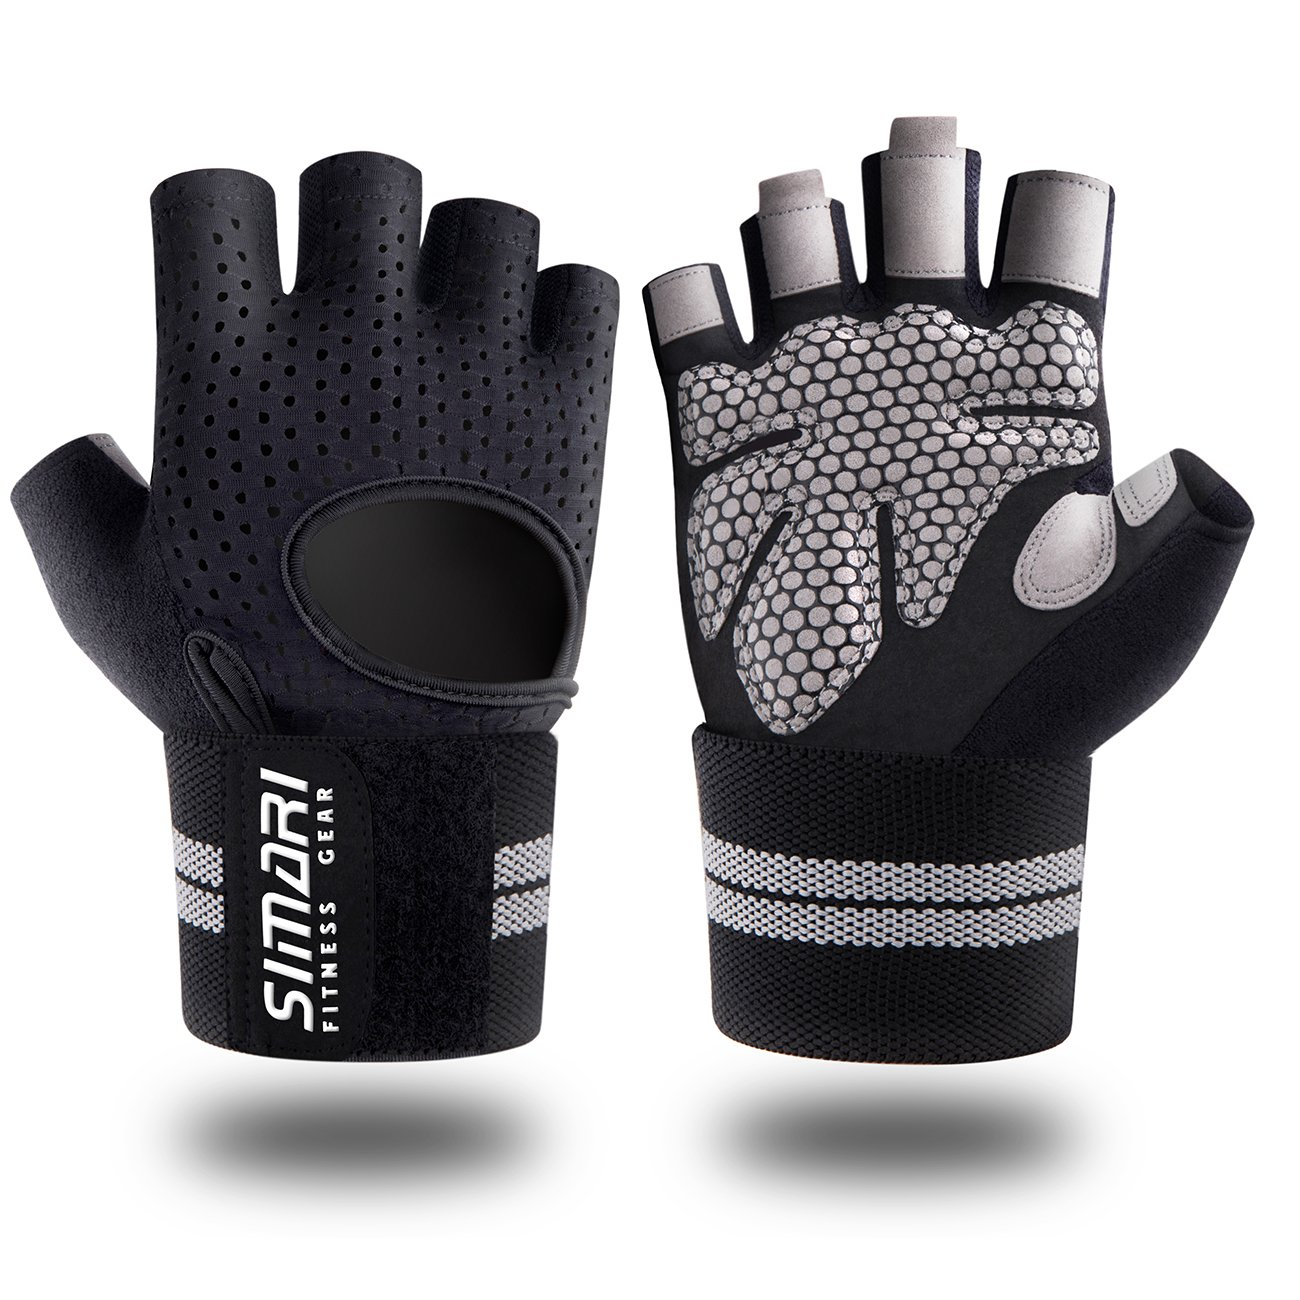 SIMARI Workout Glovesfor Women Men,Training Gloves with Wrist Support for Fitness Exercise Weight Lifting Gym Crossfit,Made of Microfiber and Lycra SMRG902